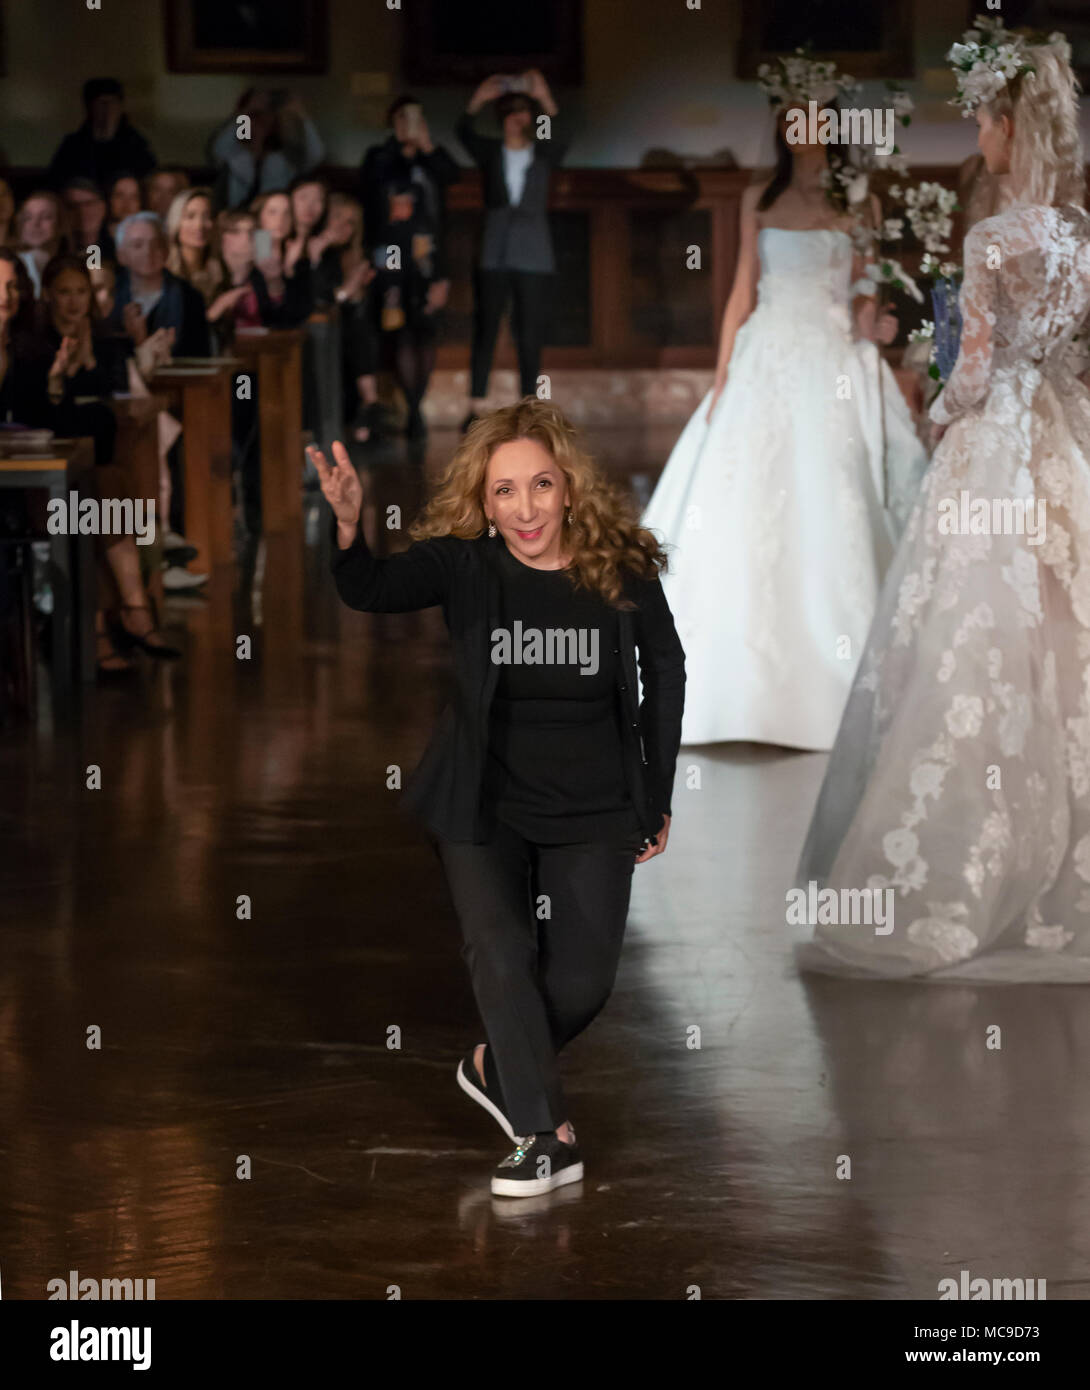 New York Ny April 12 2018 Designer Reem Acra Walks The Runway At The Reem Acra Bridal Spring 2019 Collection Runway Show During Ny Fashion Week B Stock Photo Alamy